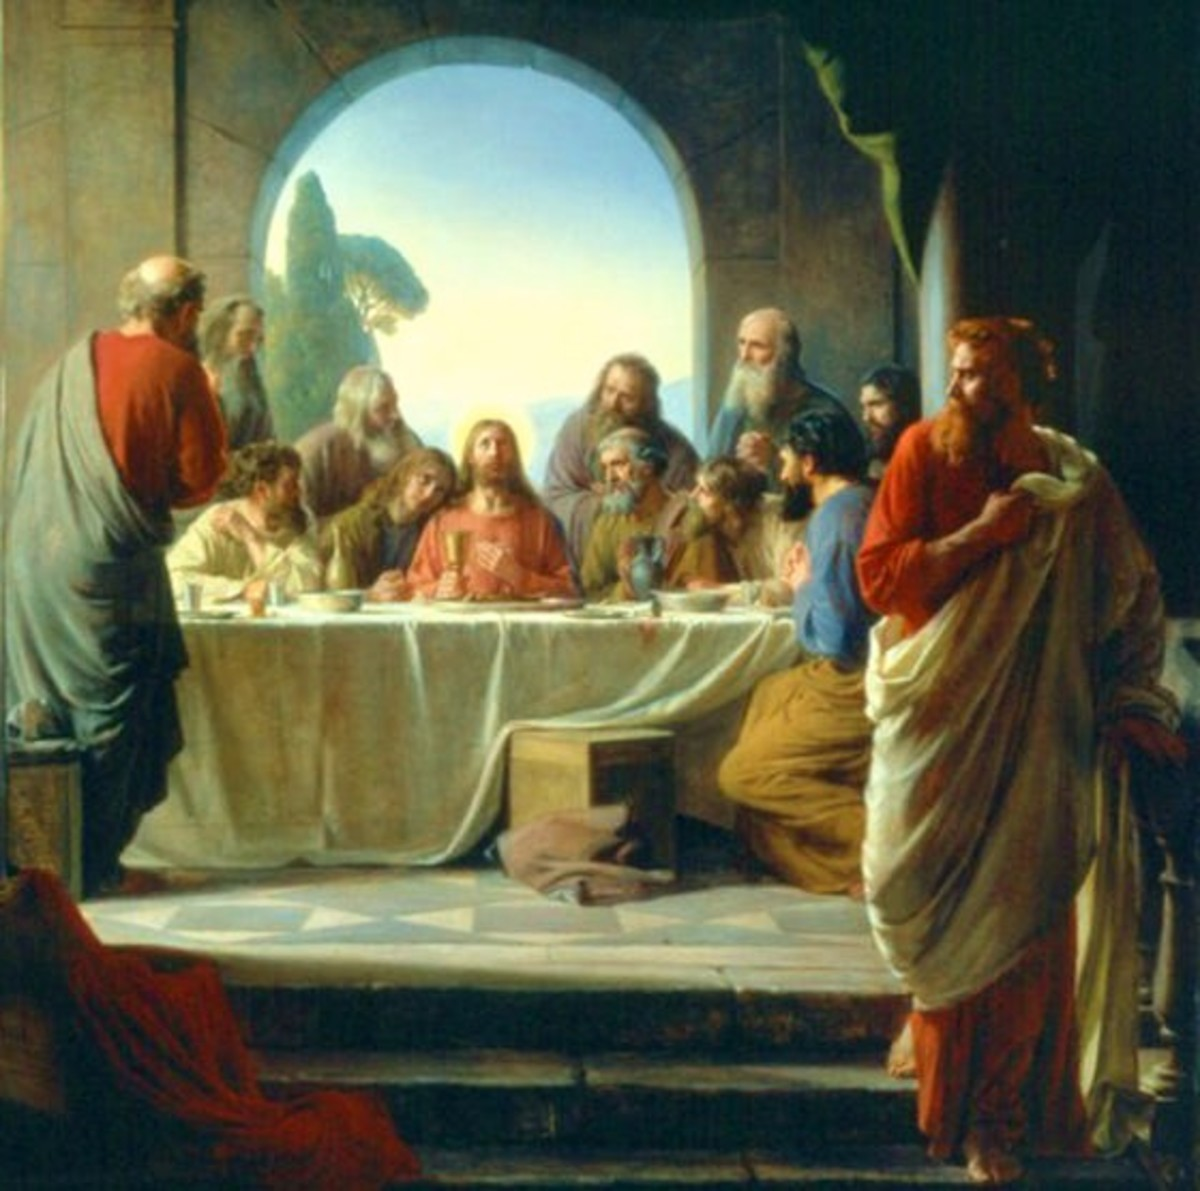 """""""Judas Iscariot retiring from The Last Supper"""" by Carl Bloch (late 19th century)"""